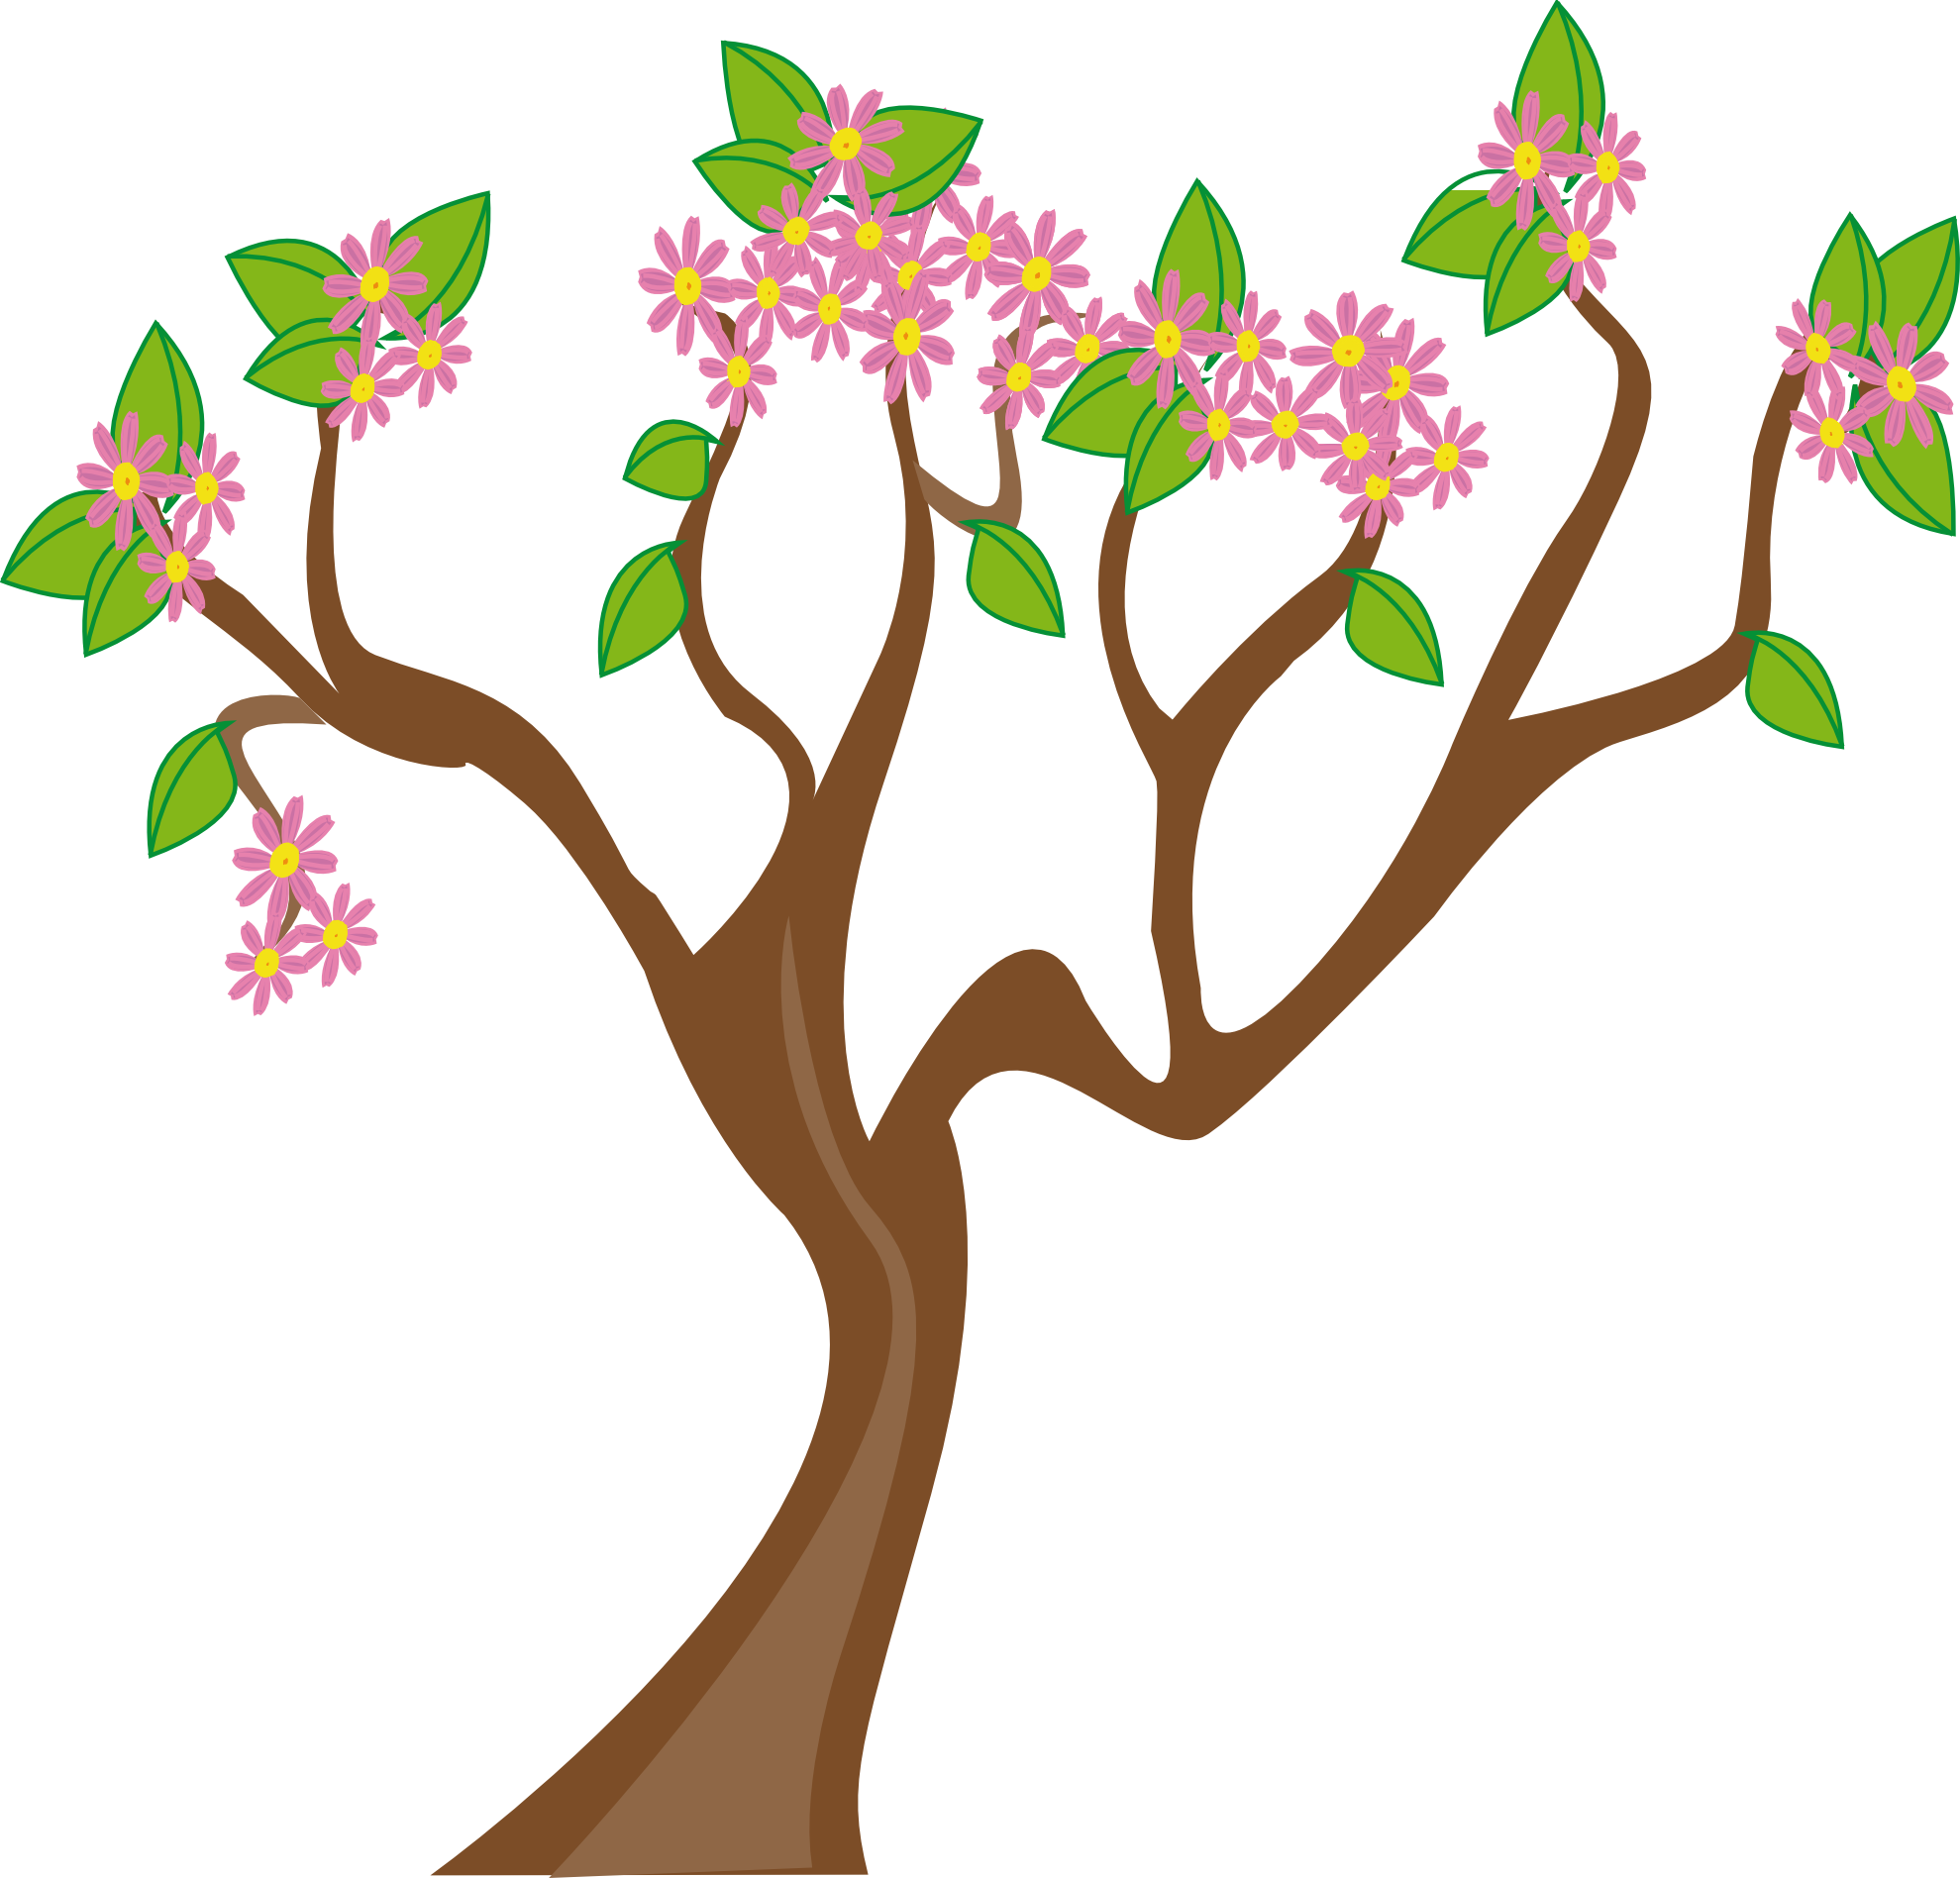 April showers bring may flowers clip art free 3.